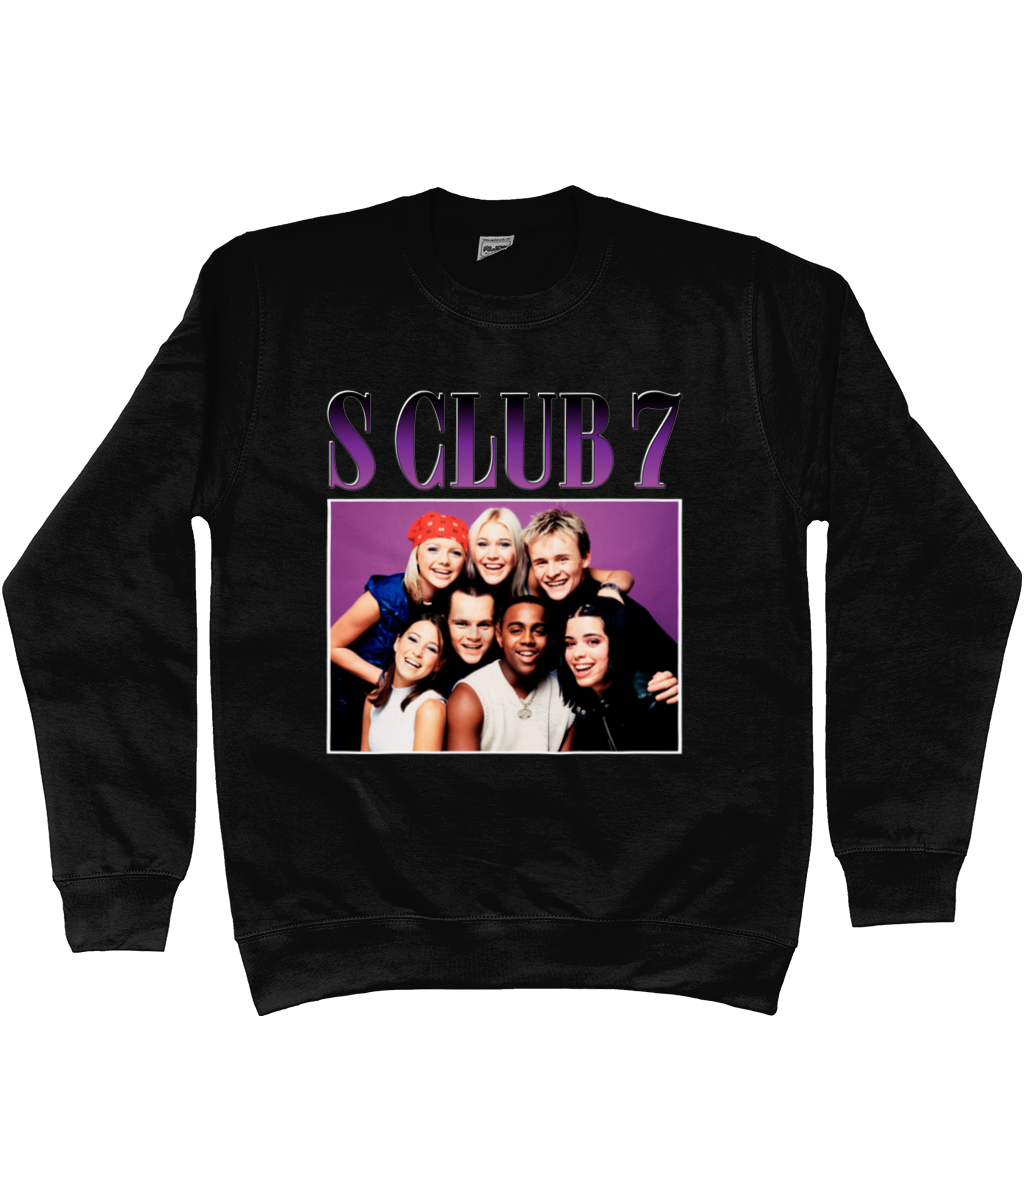 S Club 7 Sweatshirt